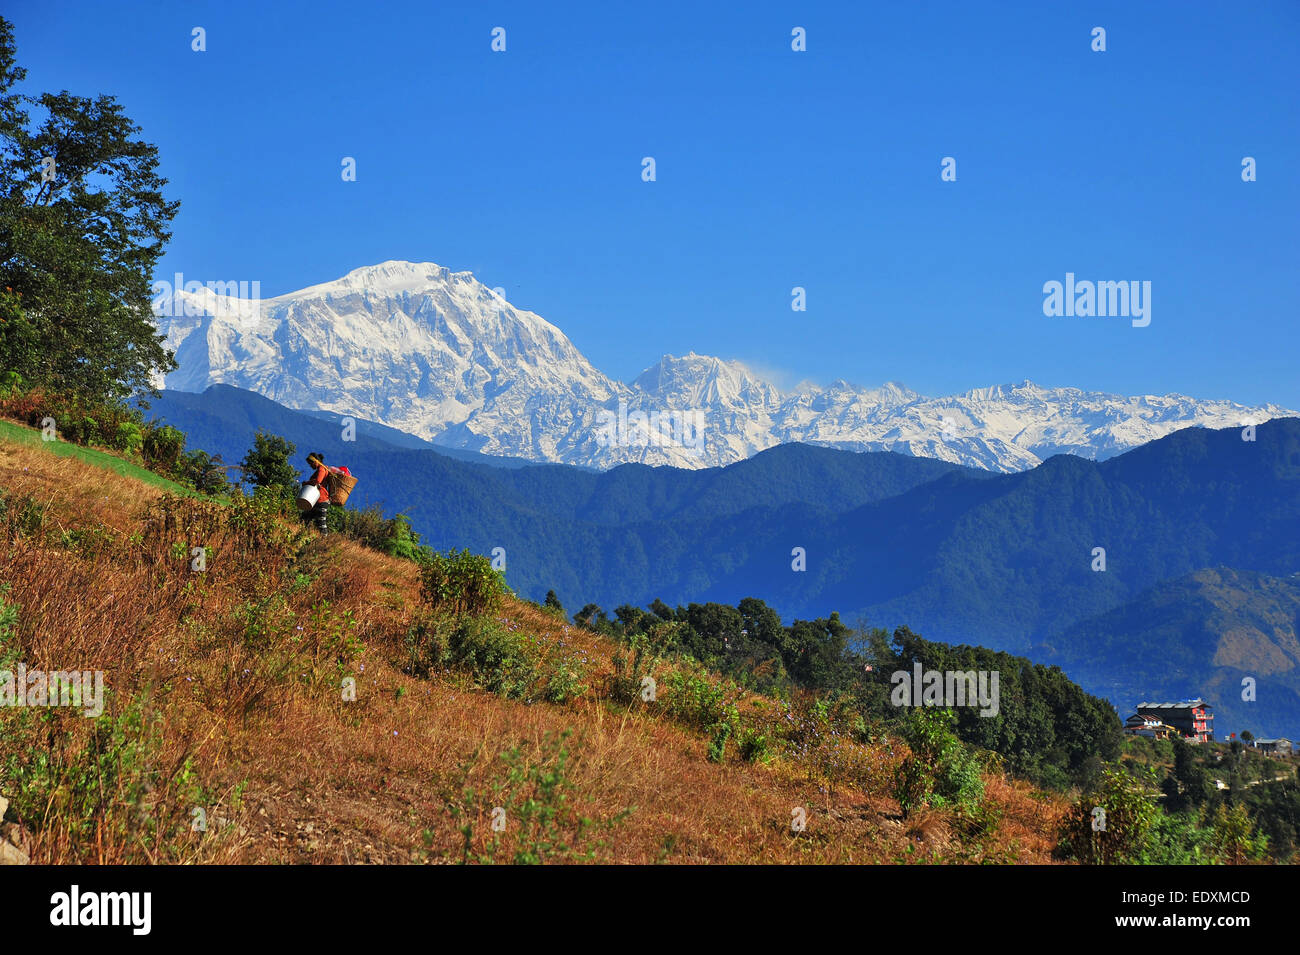 View of the Himalayan range from Nepal. The Annapurna Range - Stock Image